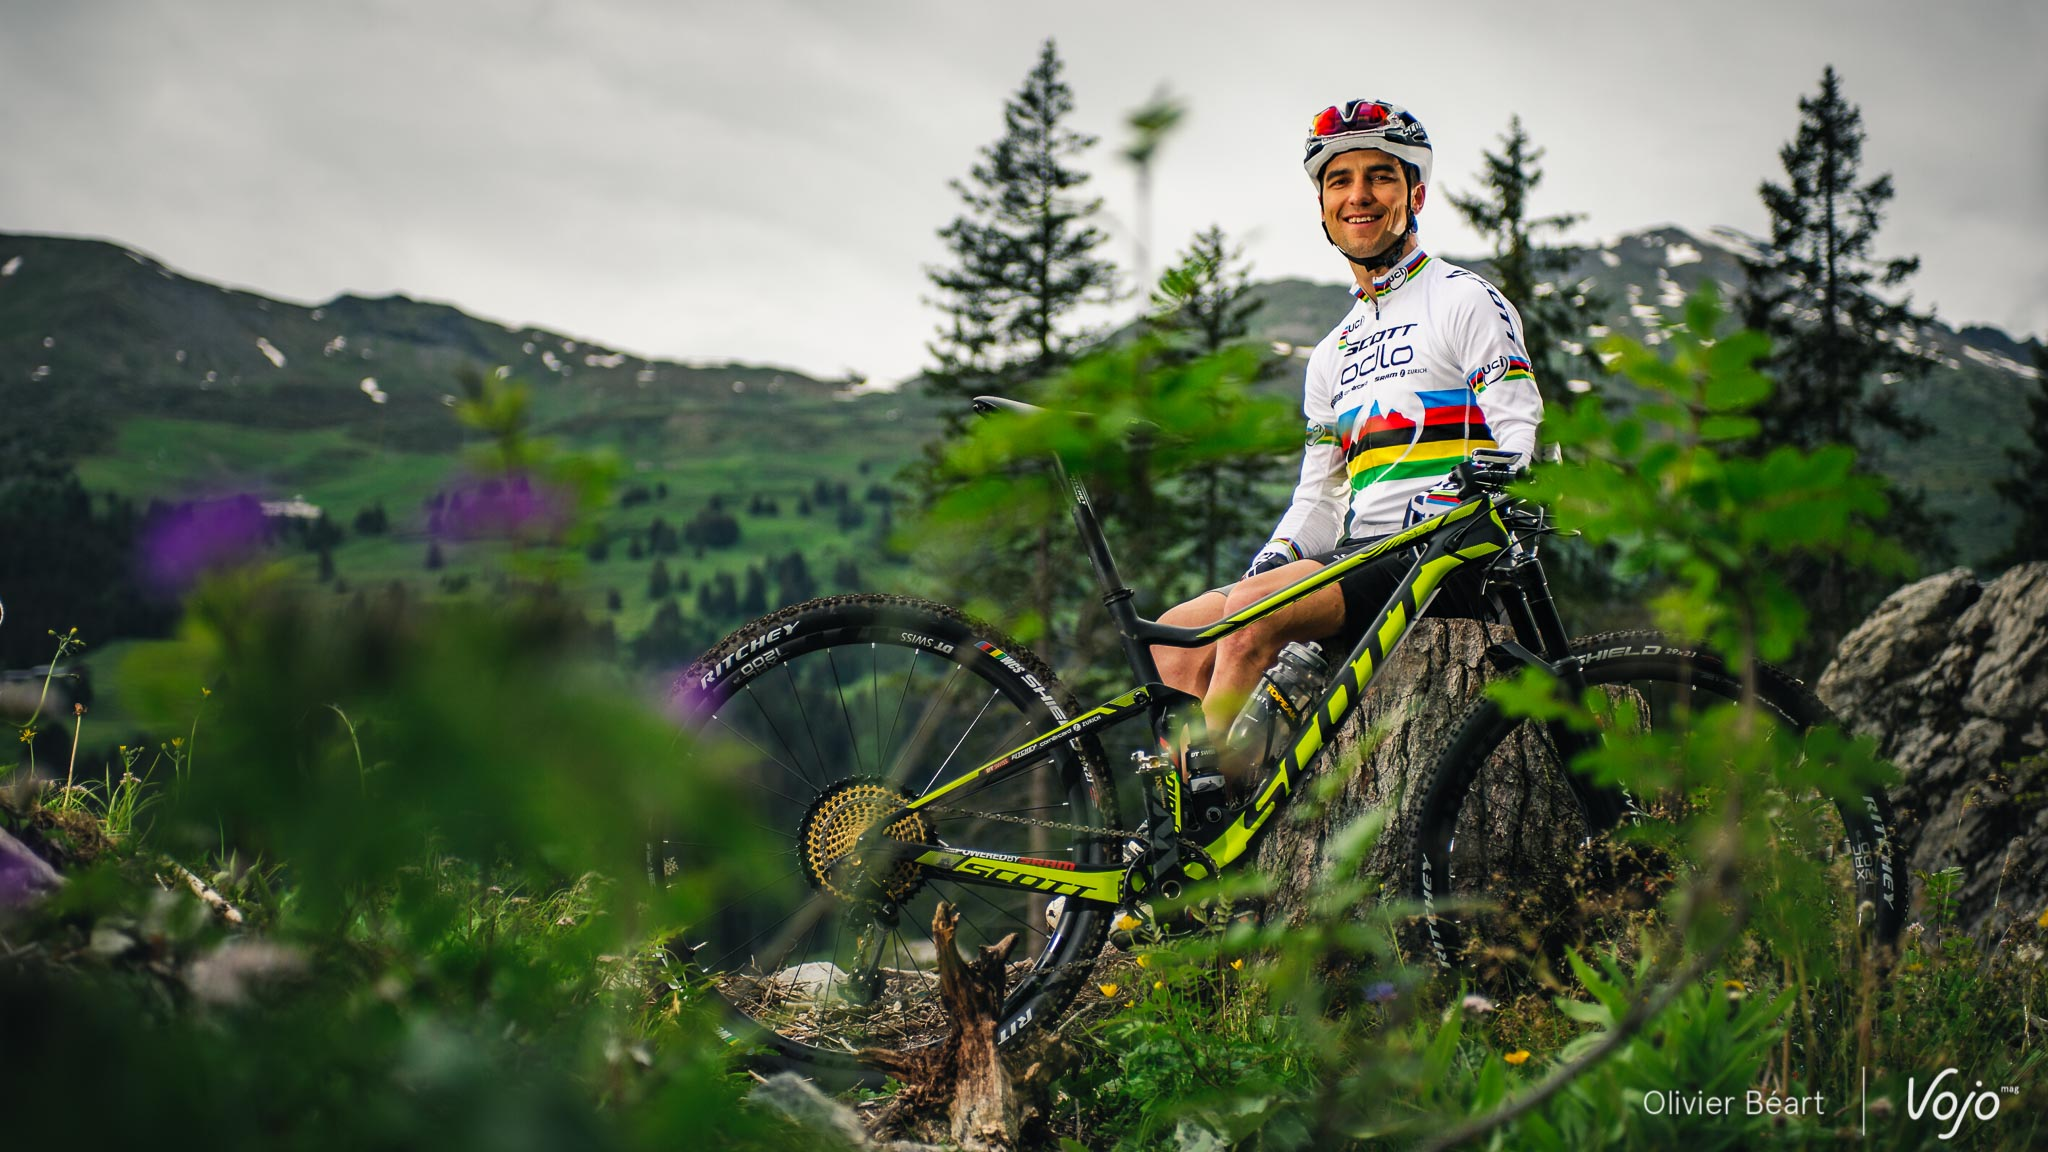 Nino_Schurter_Interview_Scott_Spark_Scale_Portrait_Copyright_OBeart_VojoMag-2